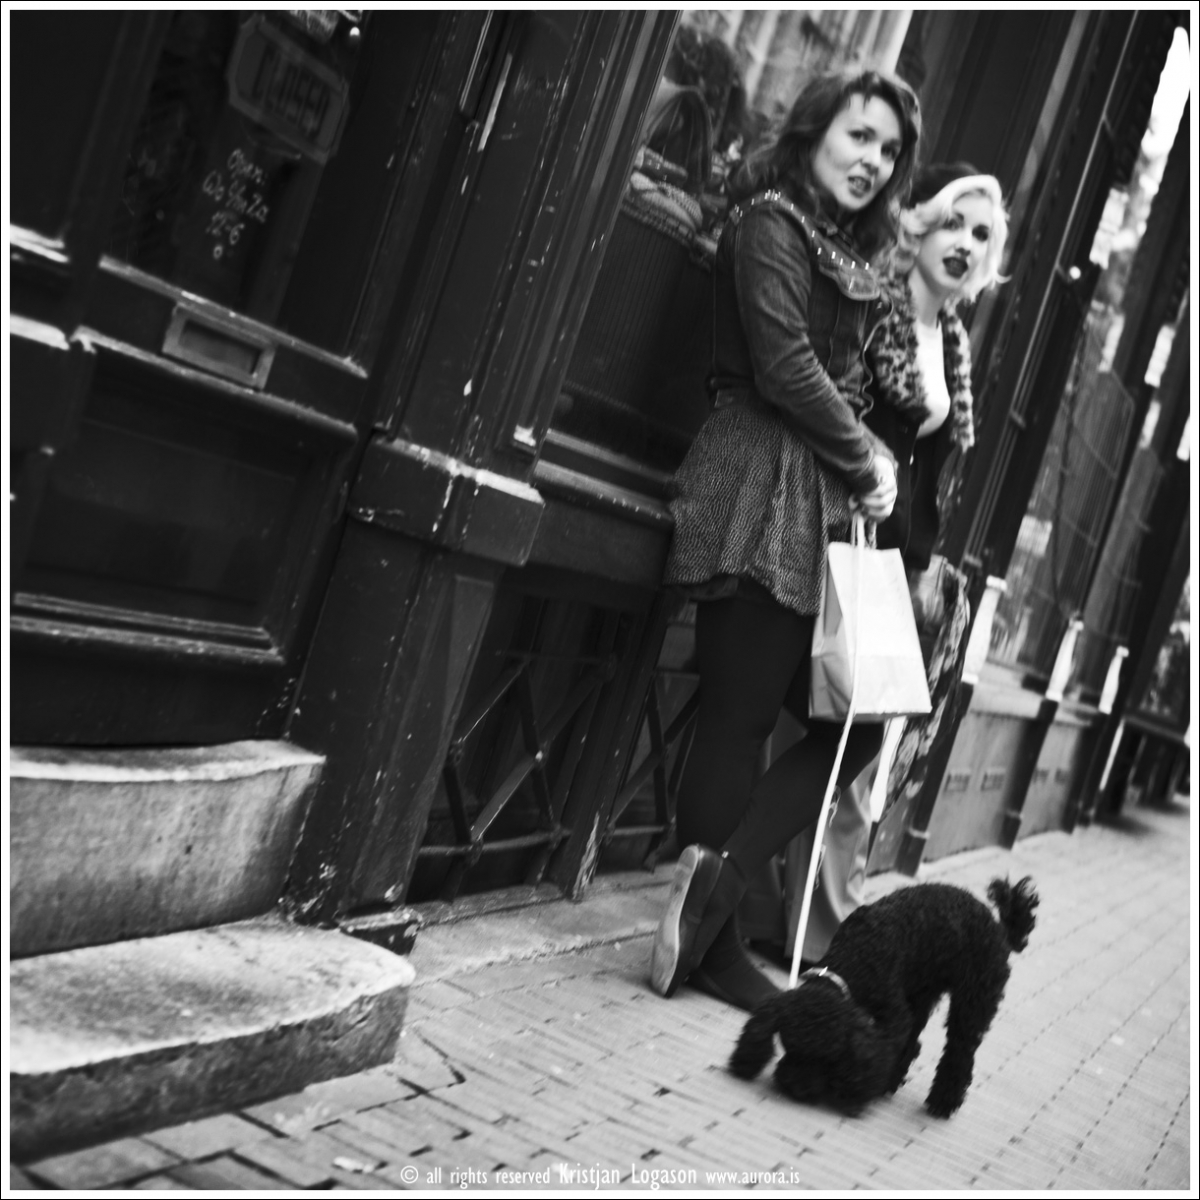 Two stylishly dressed women with dog in central Amsterdam